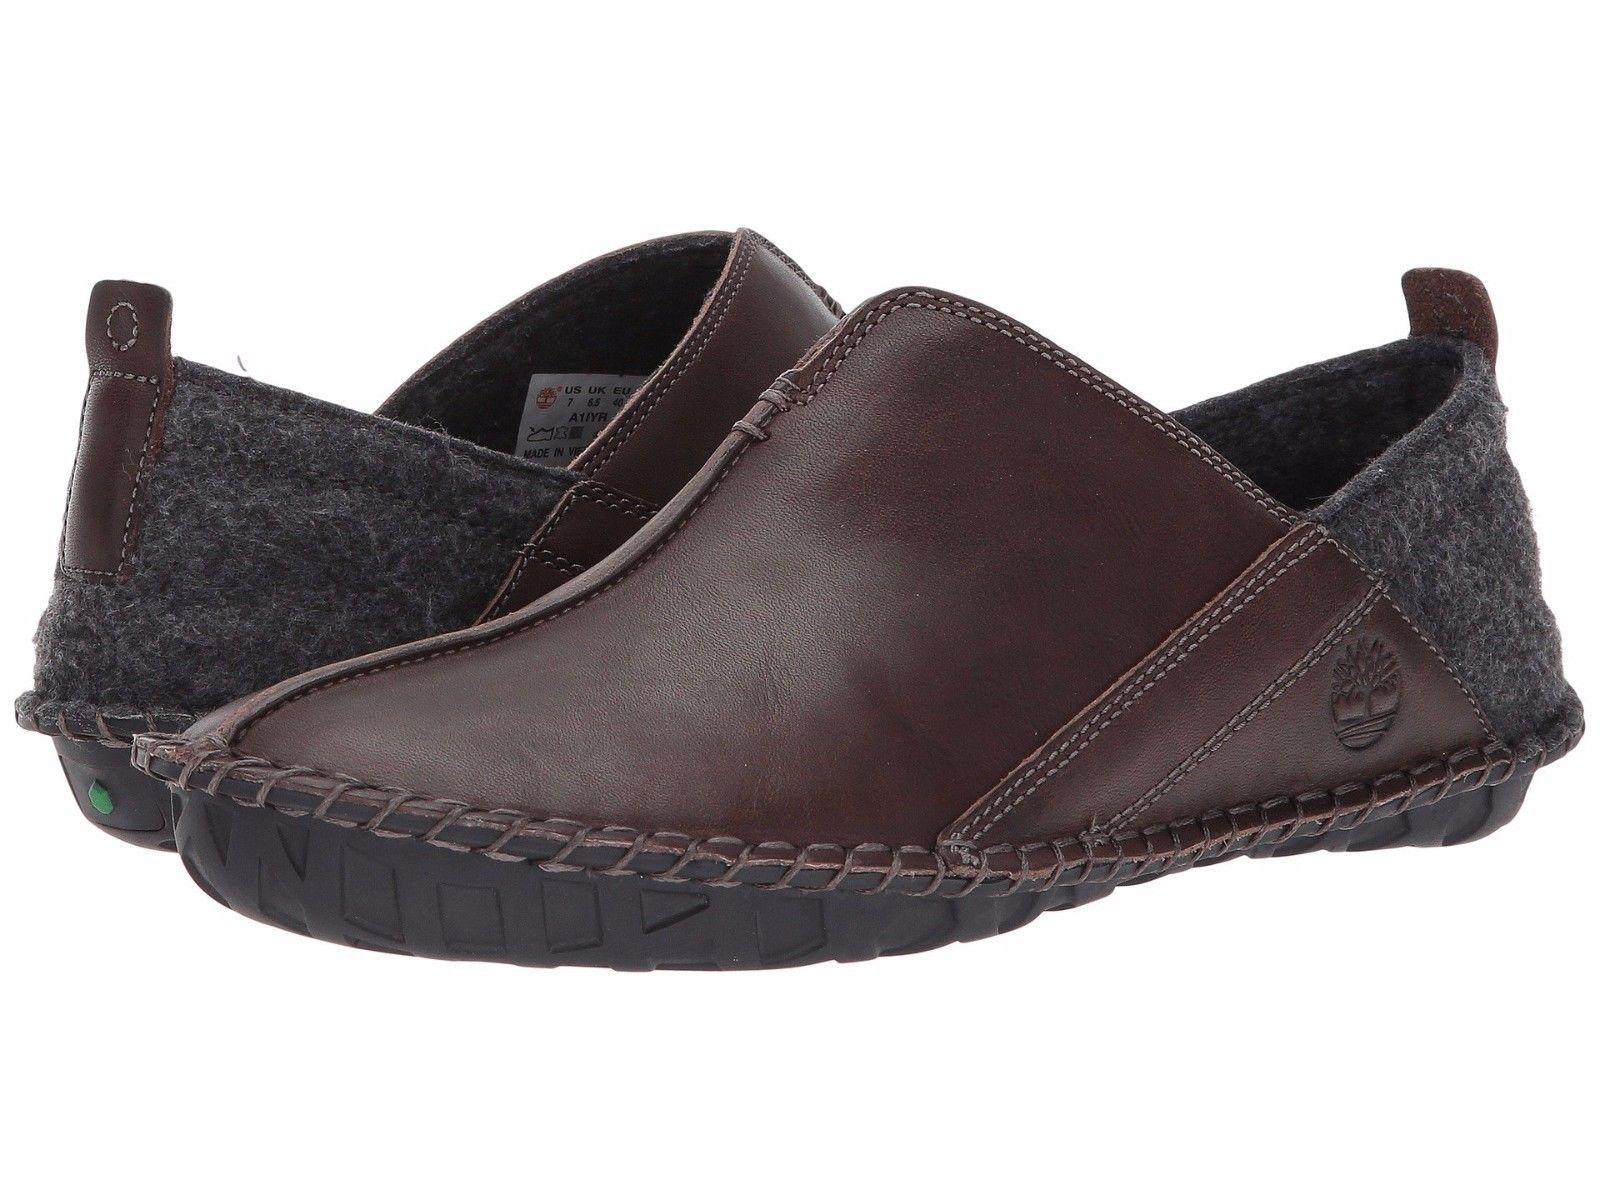 102ded25a6 Men's Timberland FRONT COUNTRY LOUNGER SLIP-ON SHOES, TB0A1IYR A66 Sizes  8-13